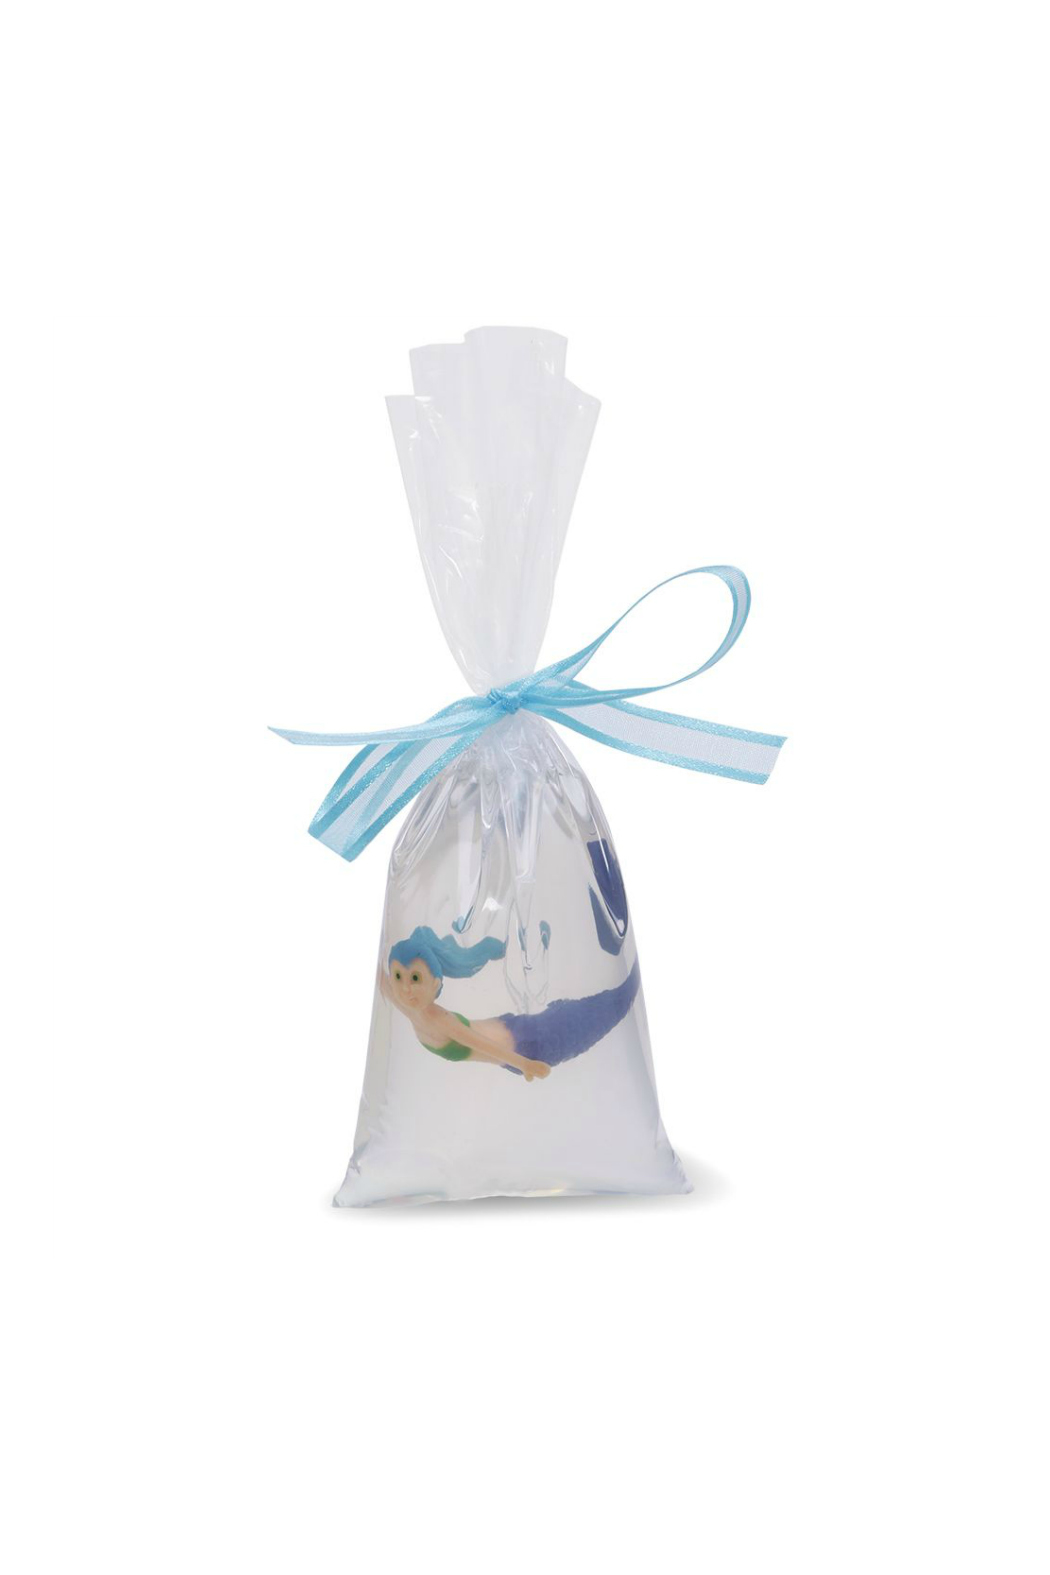 Primal Elements MERMAID SOAP IN A BAG - Main Image